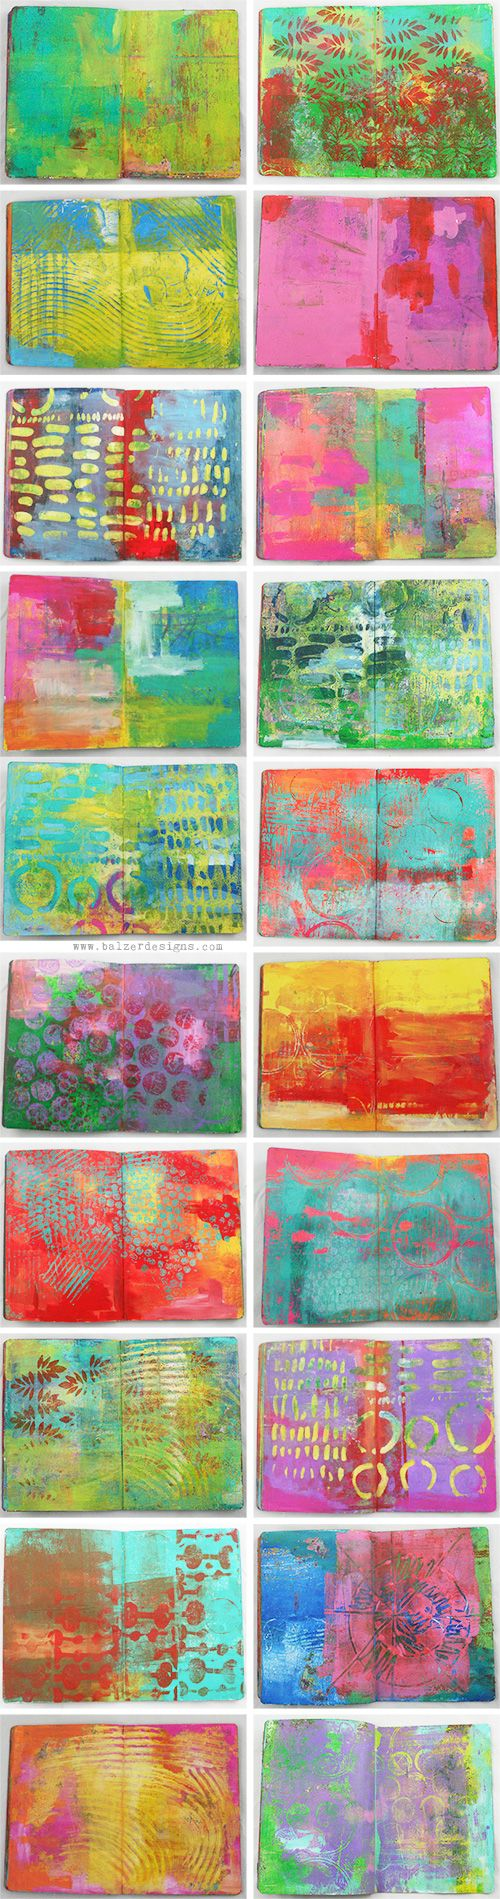 Art Journal Every Day: Gelli Printed Journals (Julie Fei Fan Balzer)